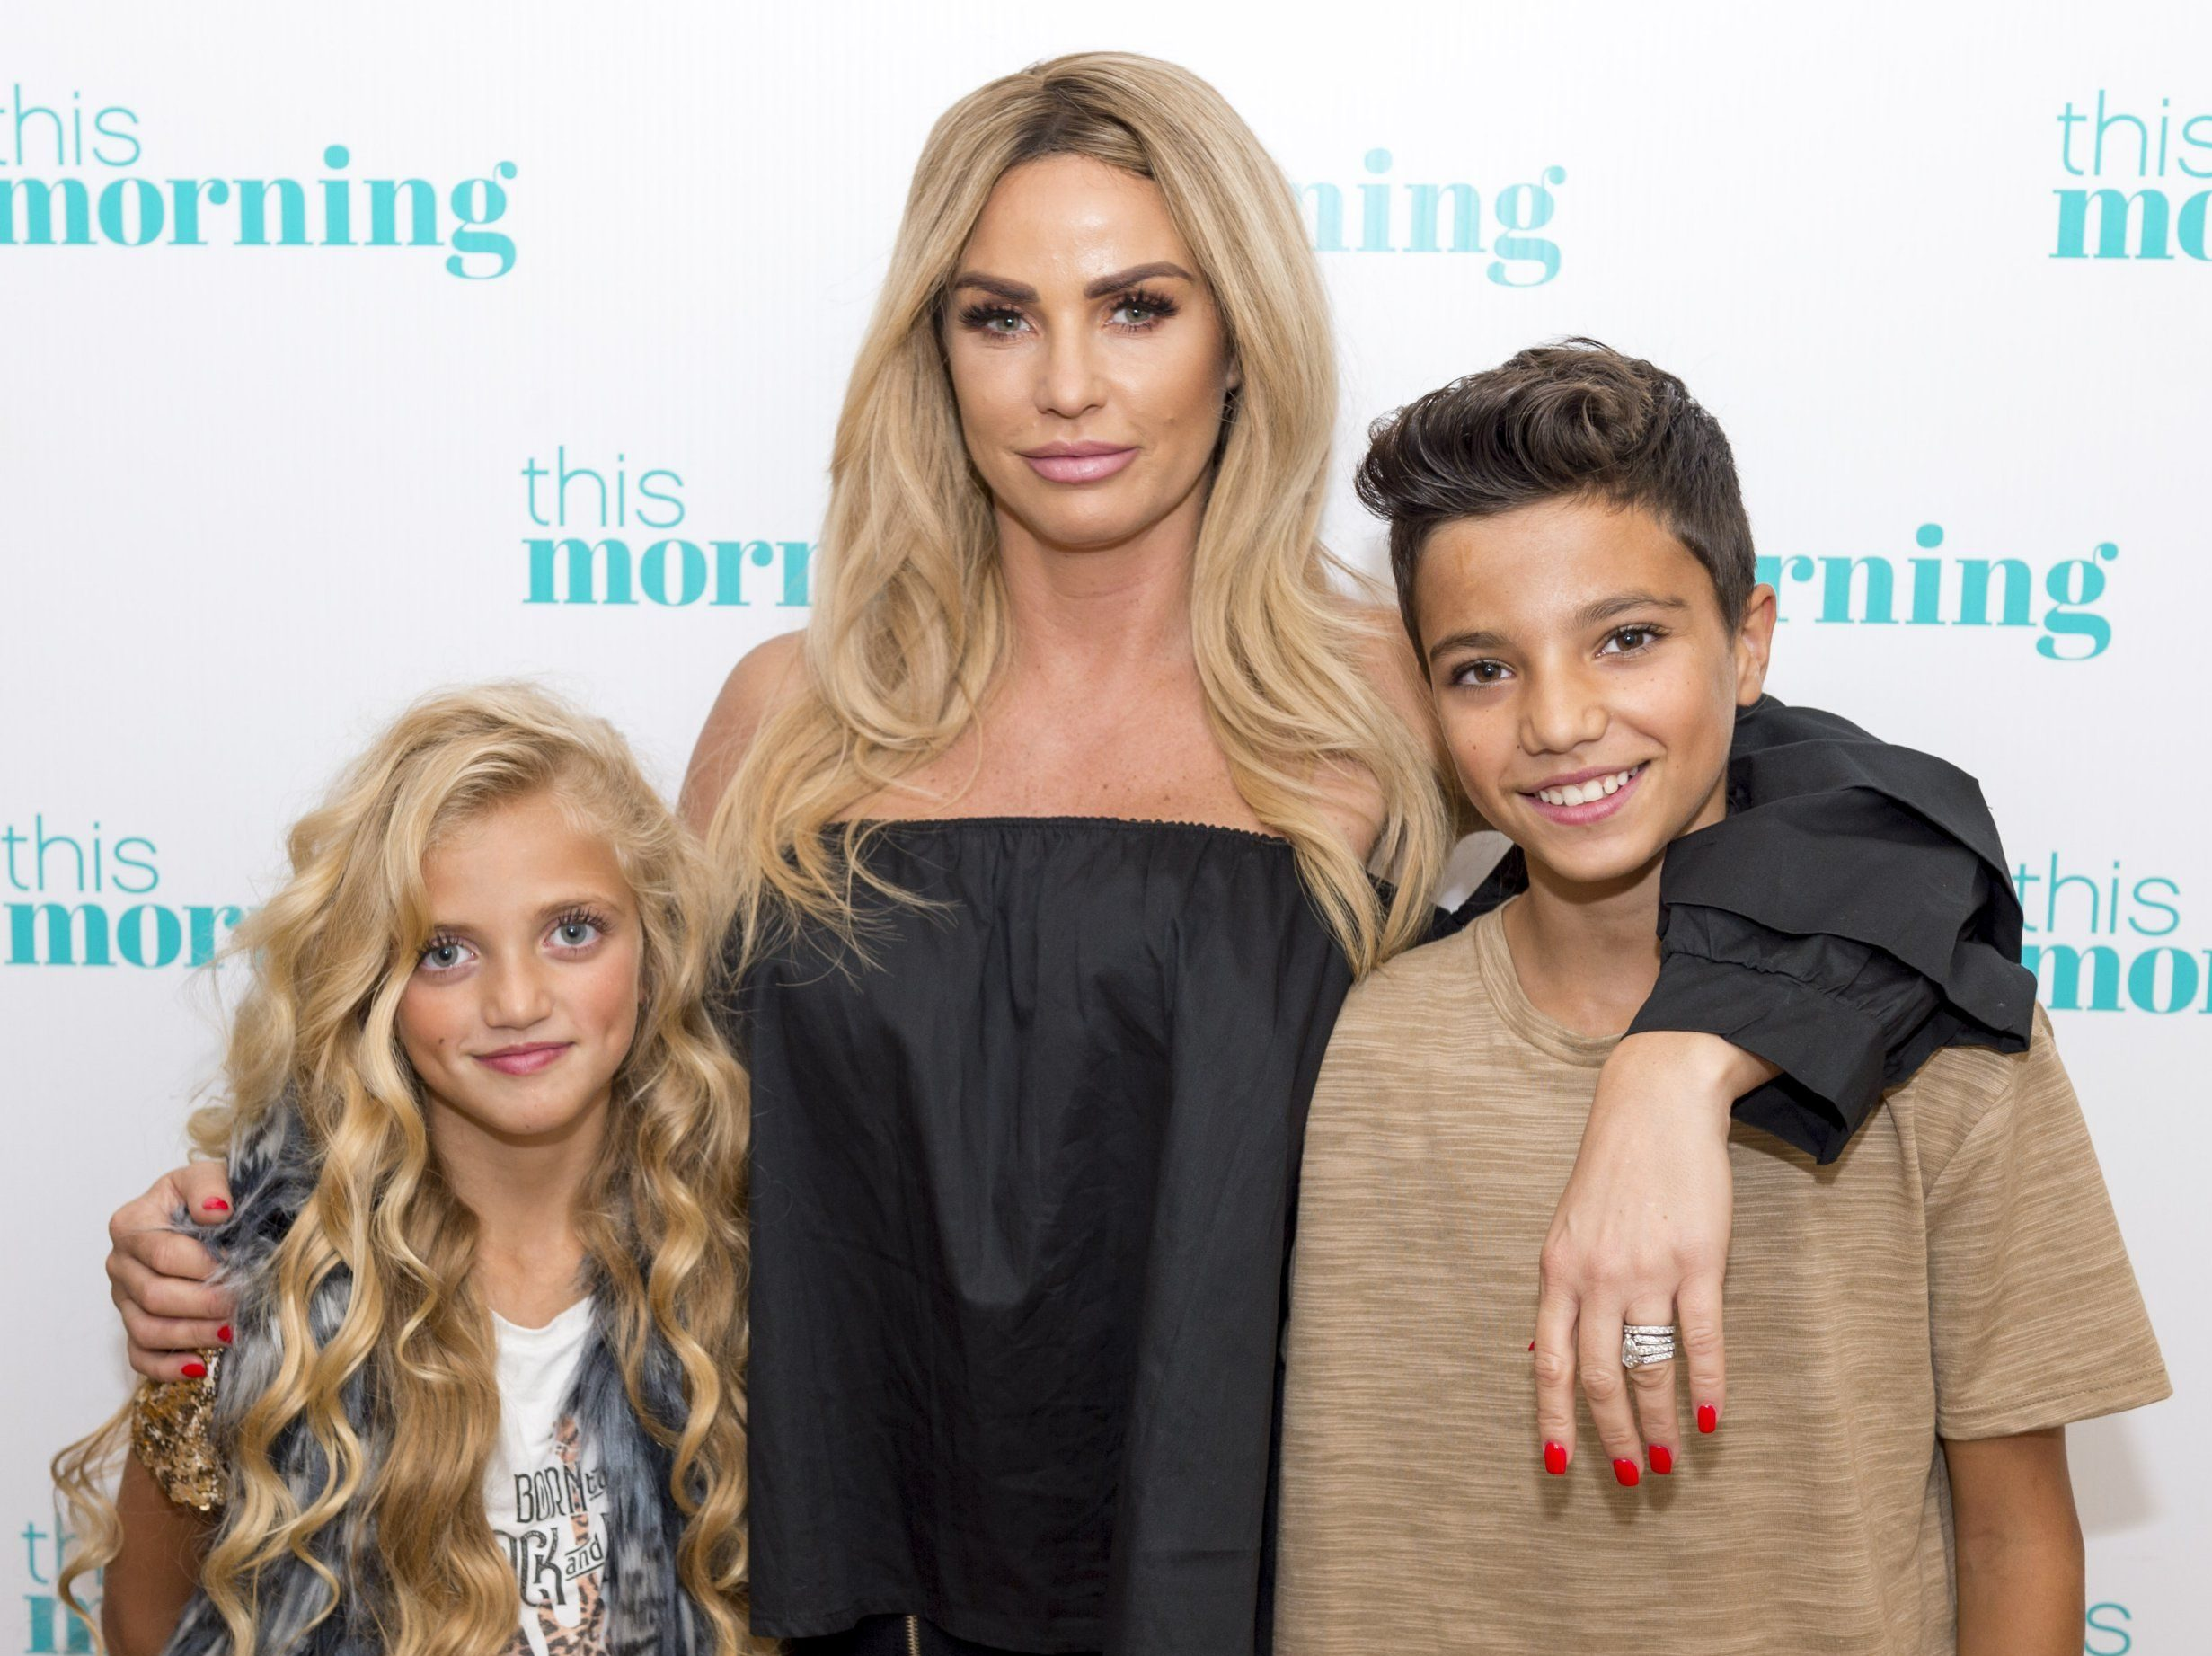 EDITORIAL USE ONLY. NO MERCHANDISING Mandatory Credit: Photo by S Meddle/ITV/REX/Shutterstock (8982234ca) Katie Price, Princess Tiaamii and Junior Andre 'This Morning' TV show, London, UK - 03 Aug 2017 She?s the original Queen of Reality TV - Katie Price tells us about new ?fly on the wall? series - her first since 2012. The 12 part series which started a few weeks ago on Quest Red promises to give fans an ?access all areas pass? into her life at home and work and will feature her husband Kieron, her children, celebrity chums and collection of animals. She tells us what we can expect from the rest of the series, why she has no problem flirting with other men and her continuing love of glamour modelling.